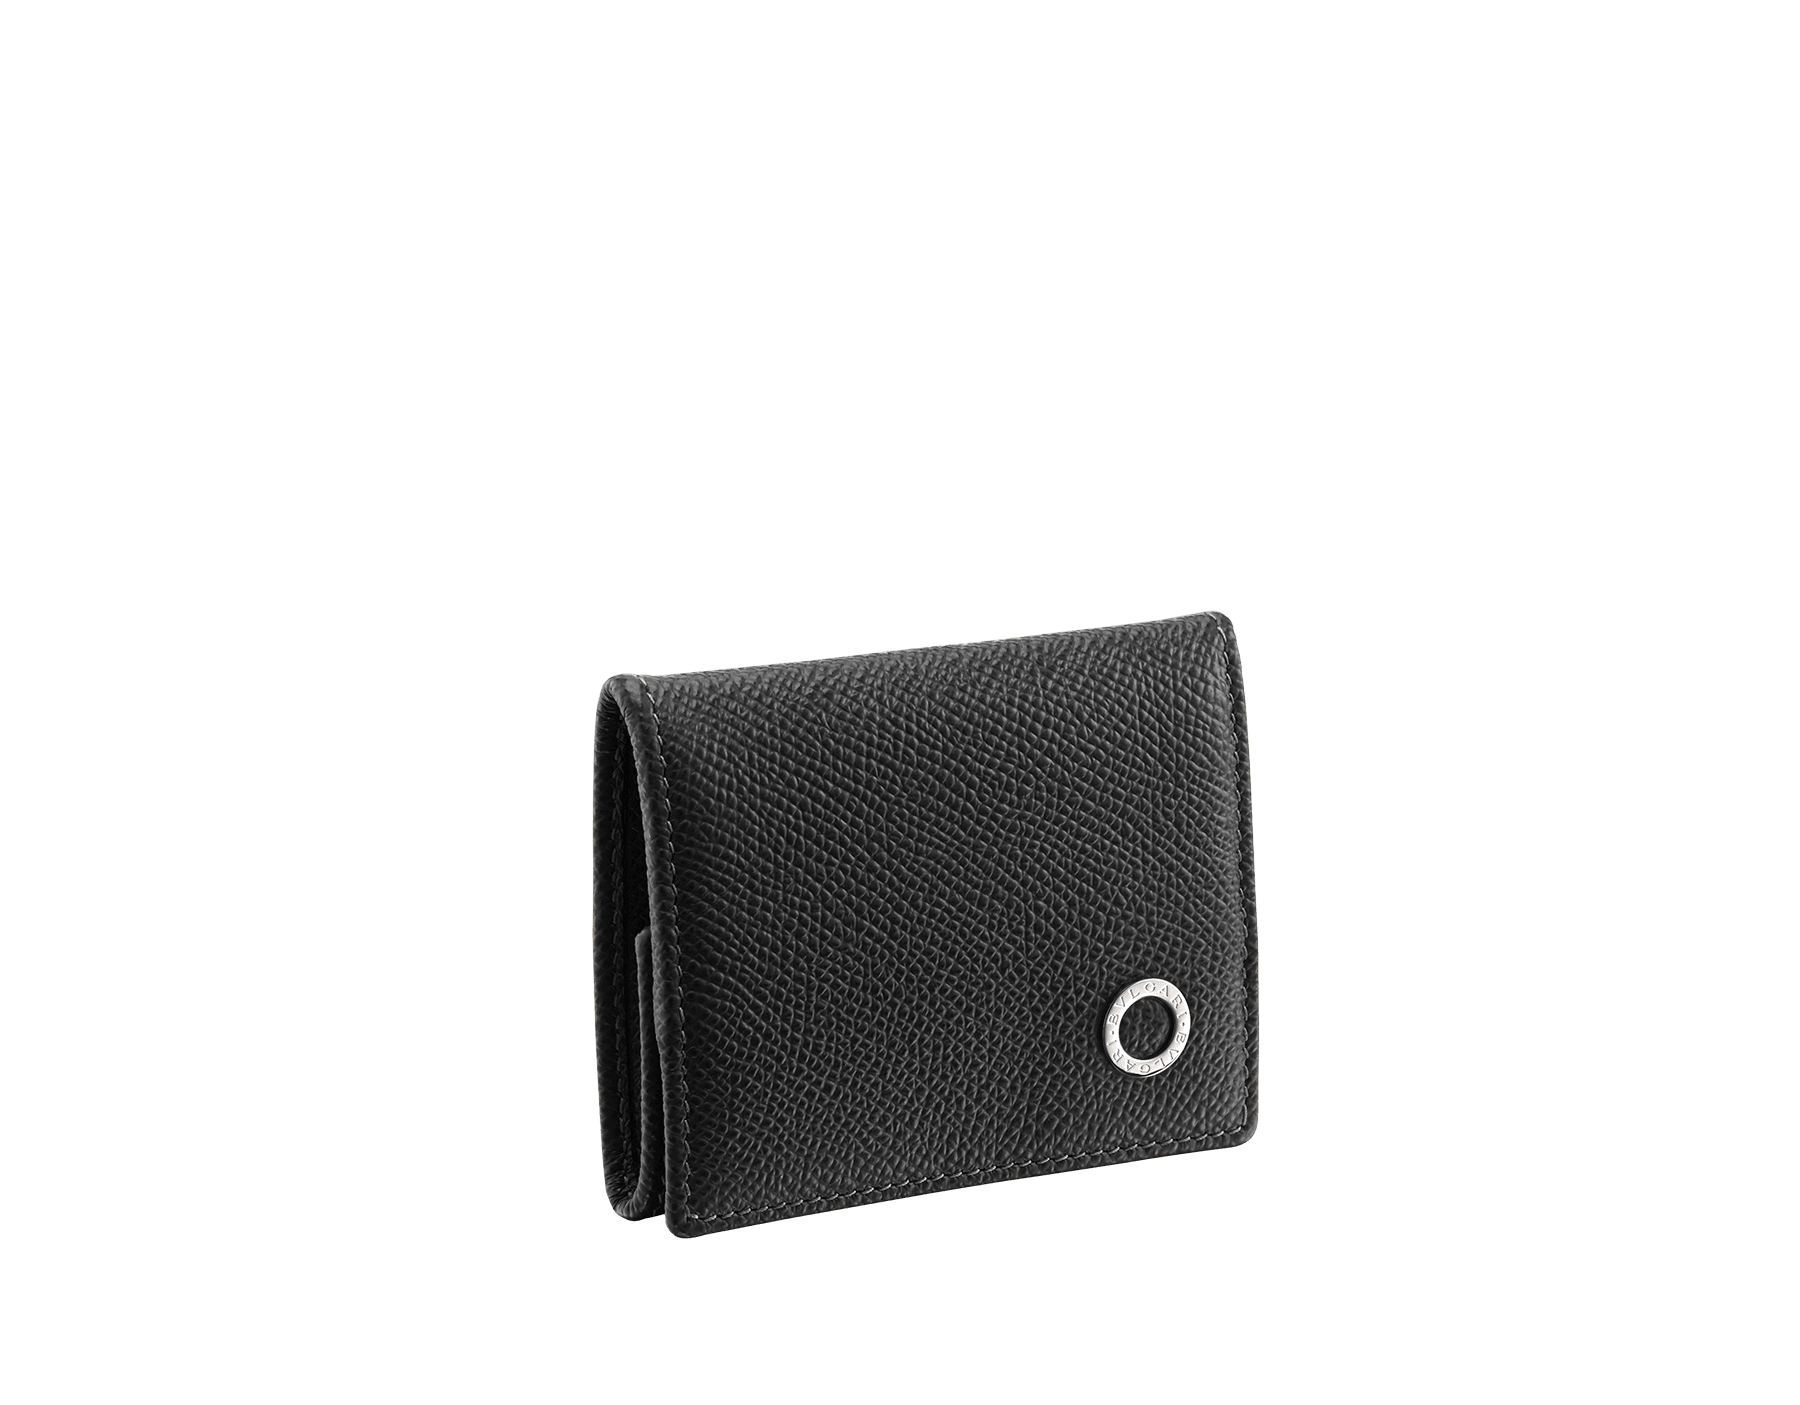 Coin holder in denim sapphire grain calf leather, with brass palladium plated hardware featuring the Bvlgari-Bvlgari motif. BBM-WLT-COIN image 1